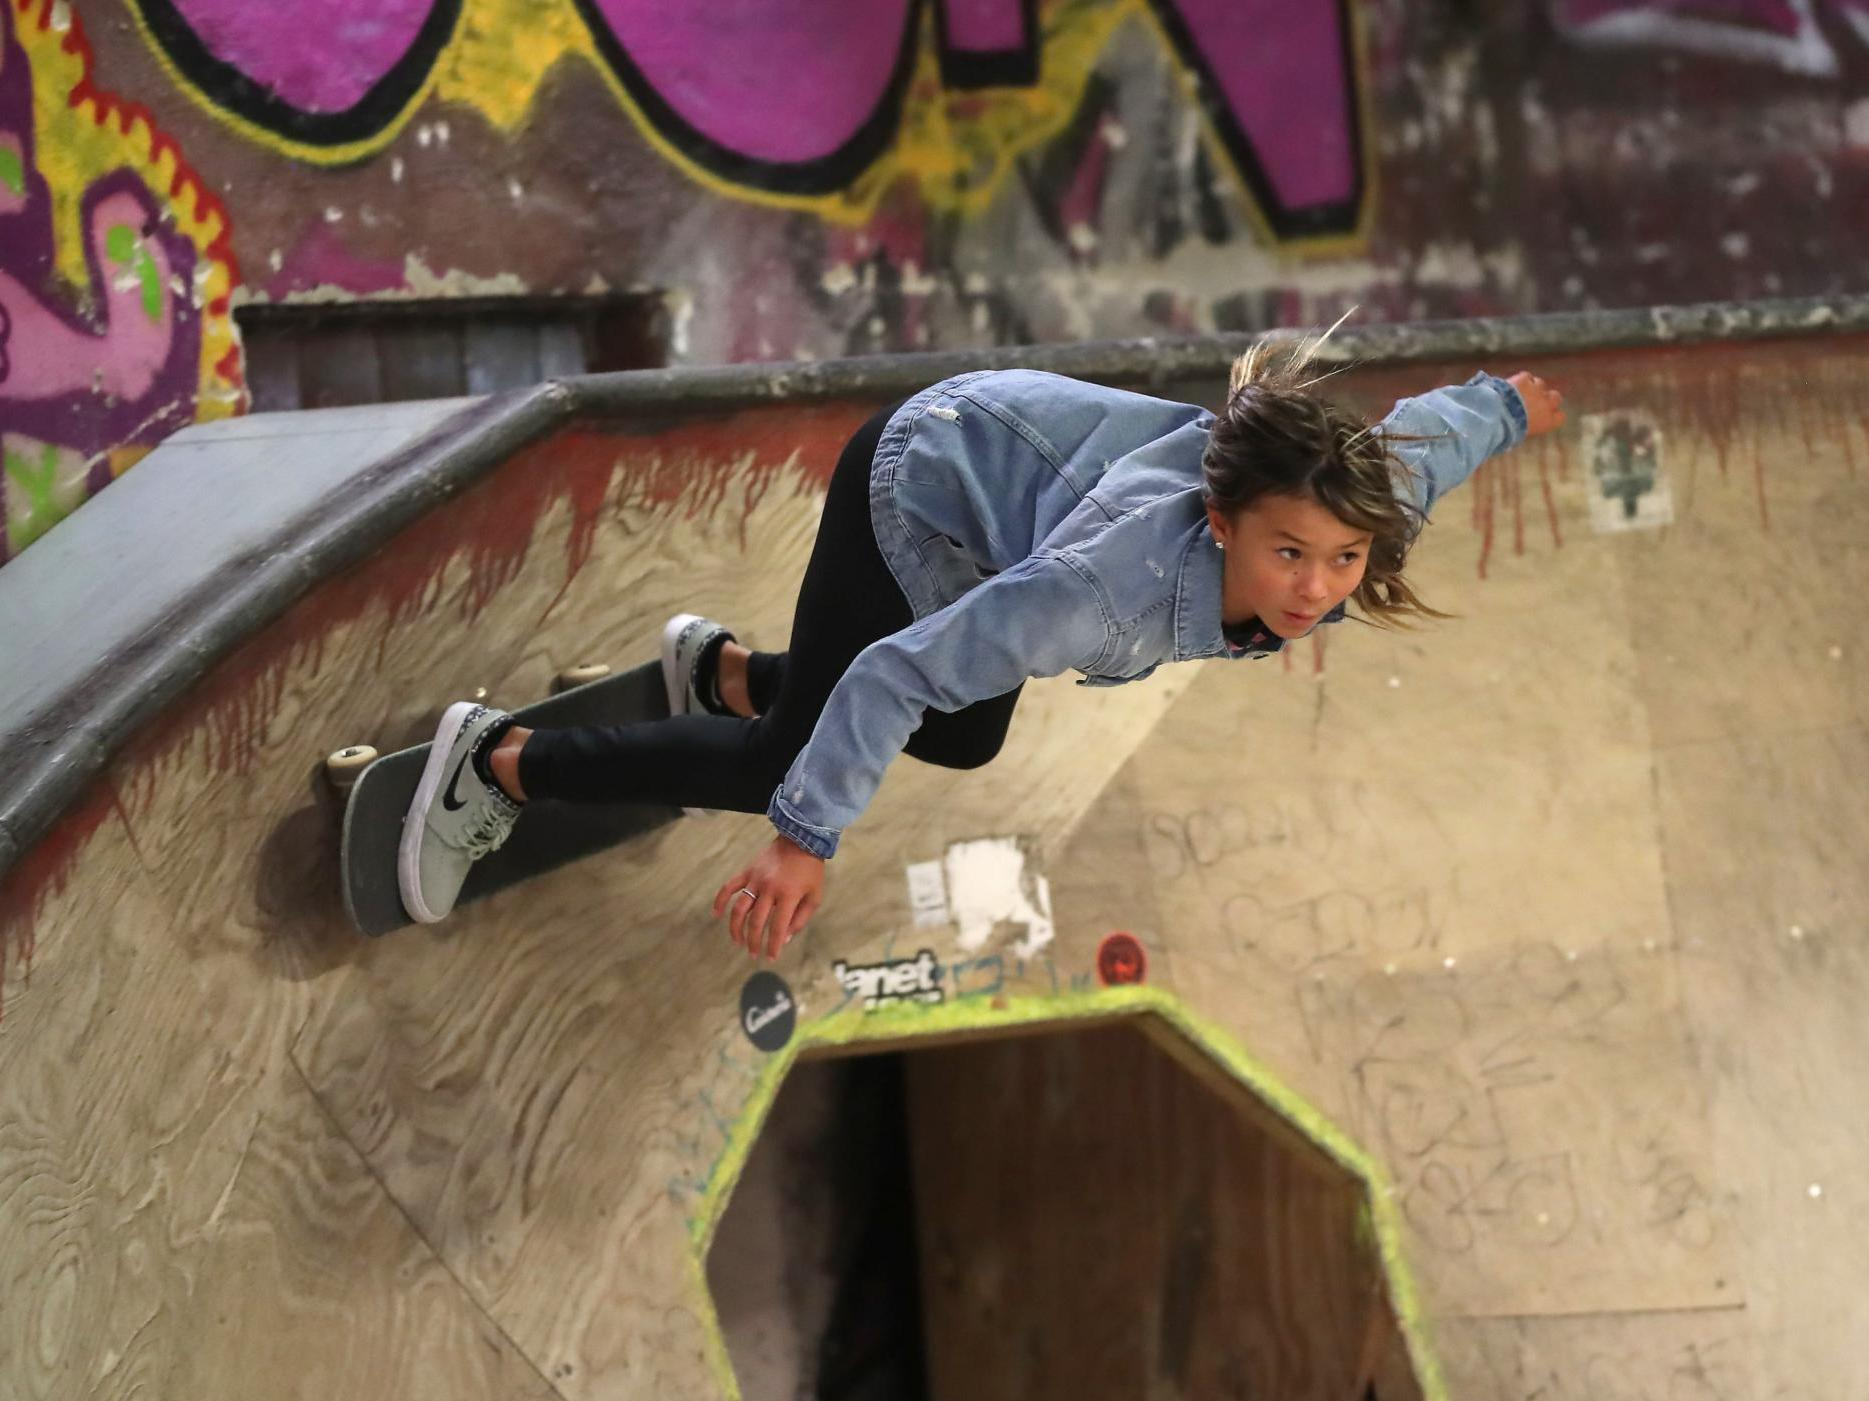 Sky Brown: 11-year-old skateboarder 'lucky to be alive' after fracturing skull in fall thumbnail